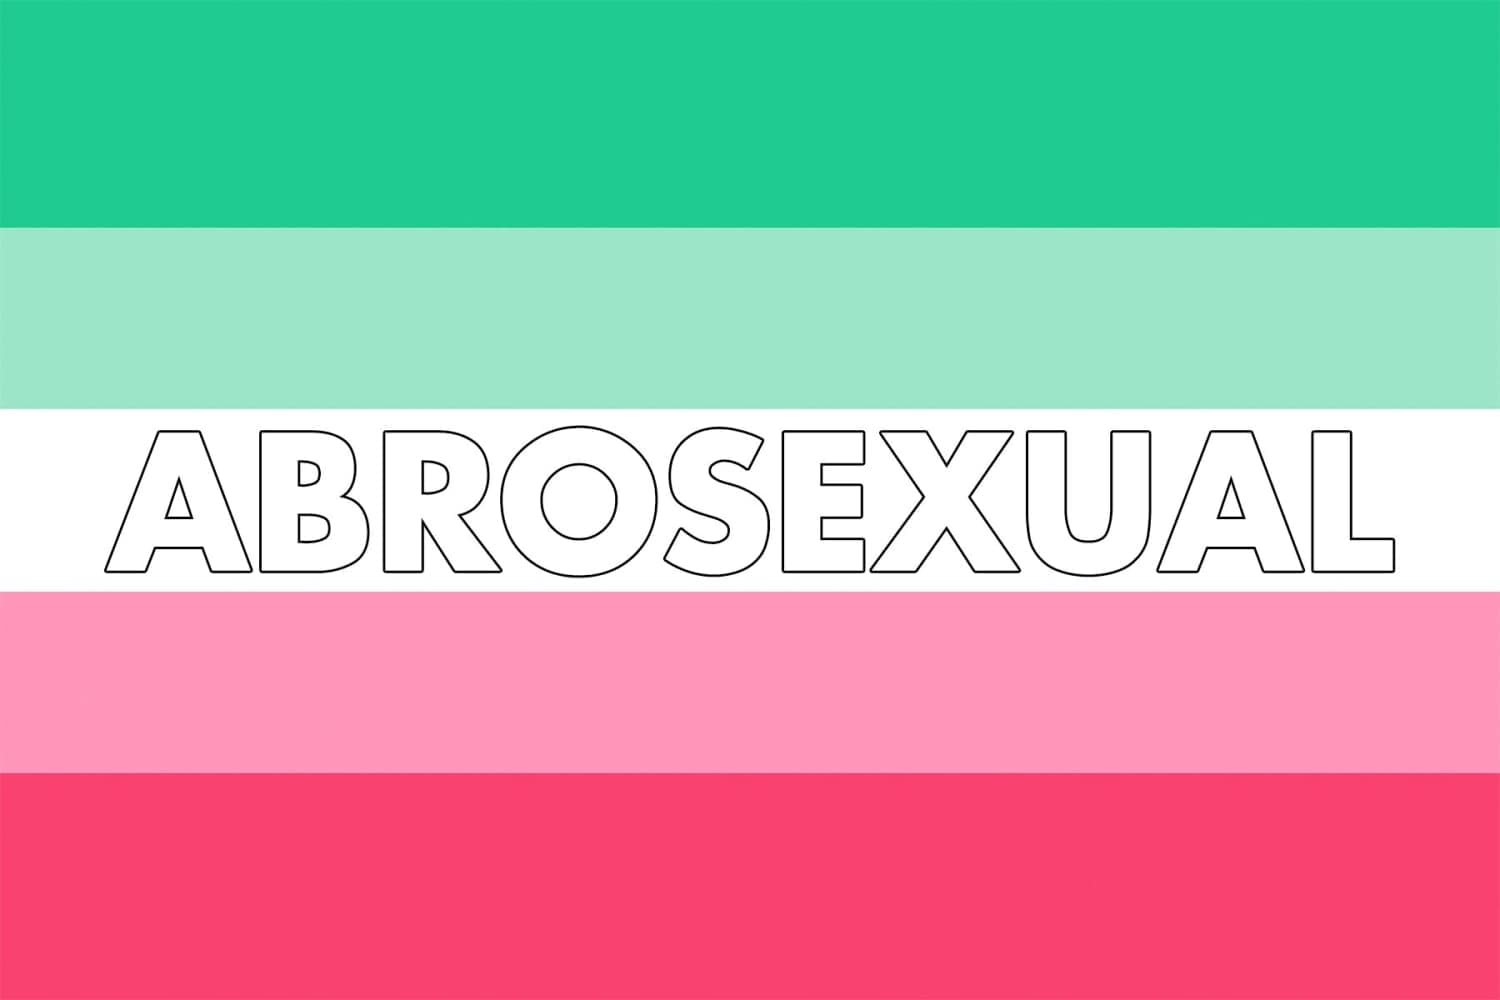 Abrosexual Definition | Abrosexual Pride Flag